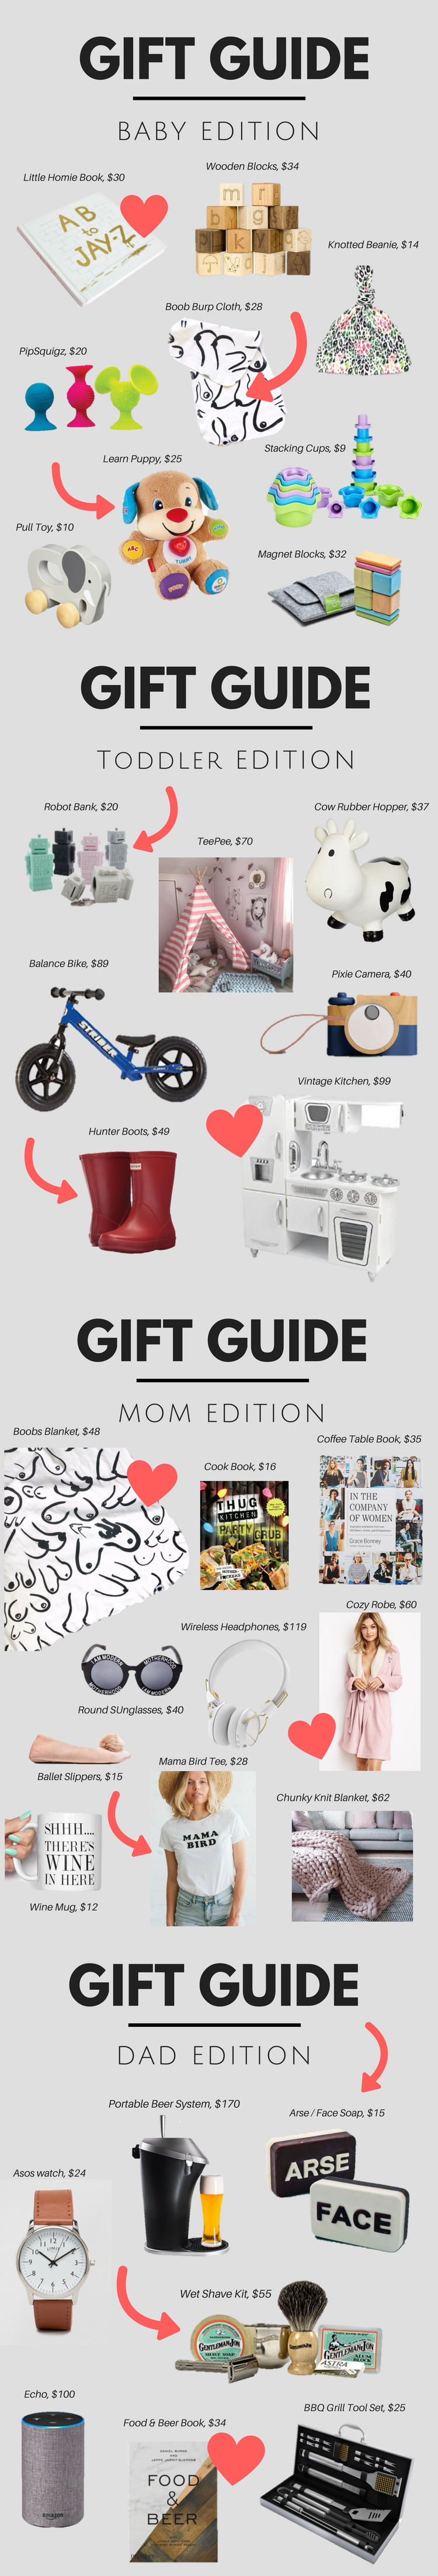 Lot801 2017 Ultimate Holiday Gift Guide - baby toddler mom dad.png